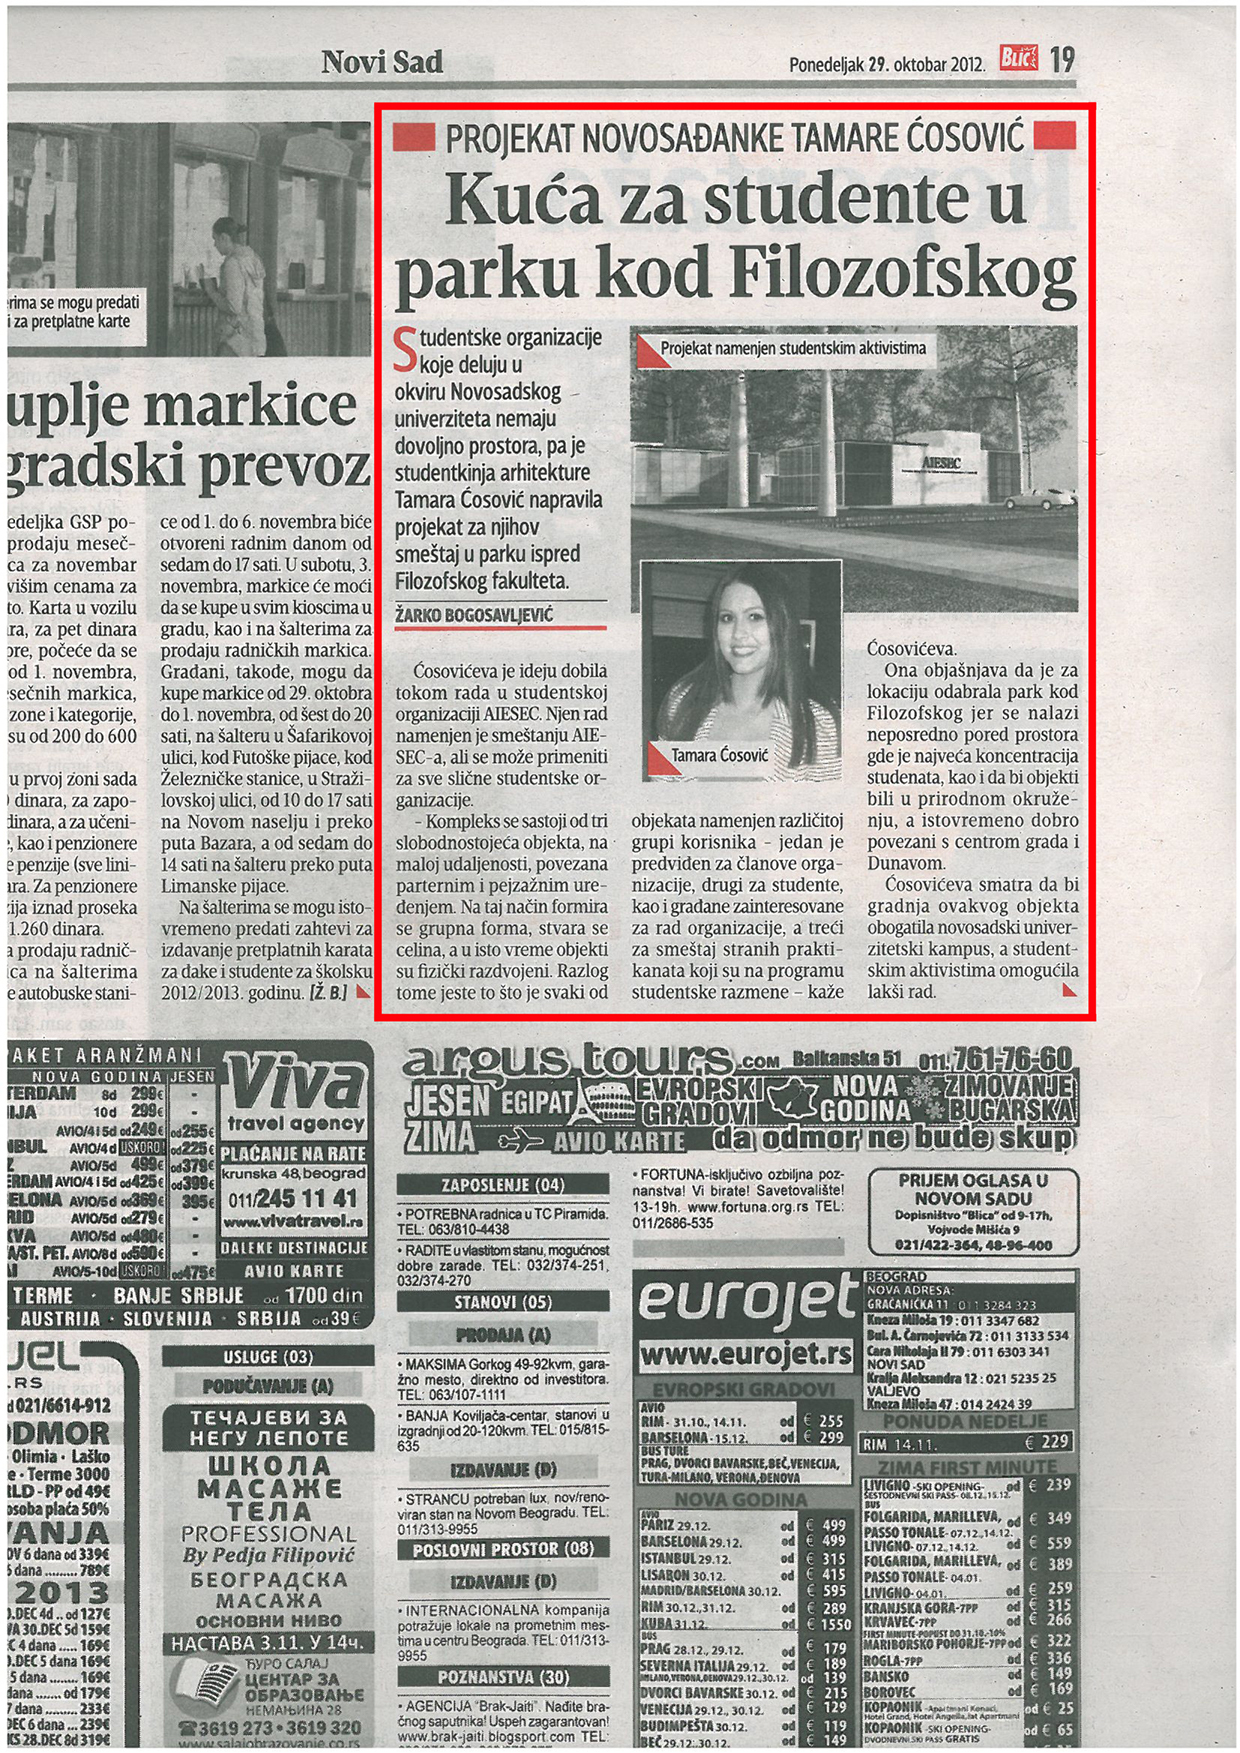 Masters Thesis in local newspaper